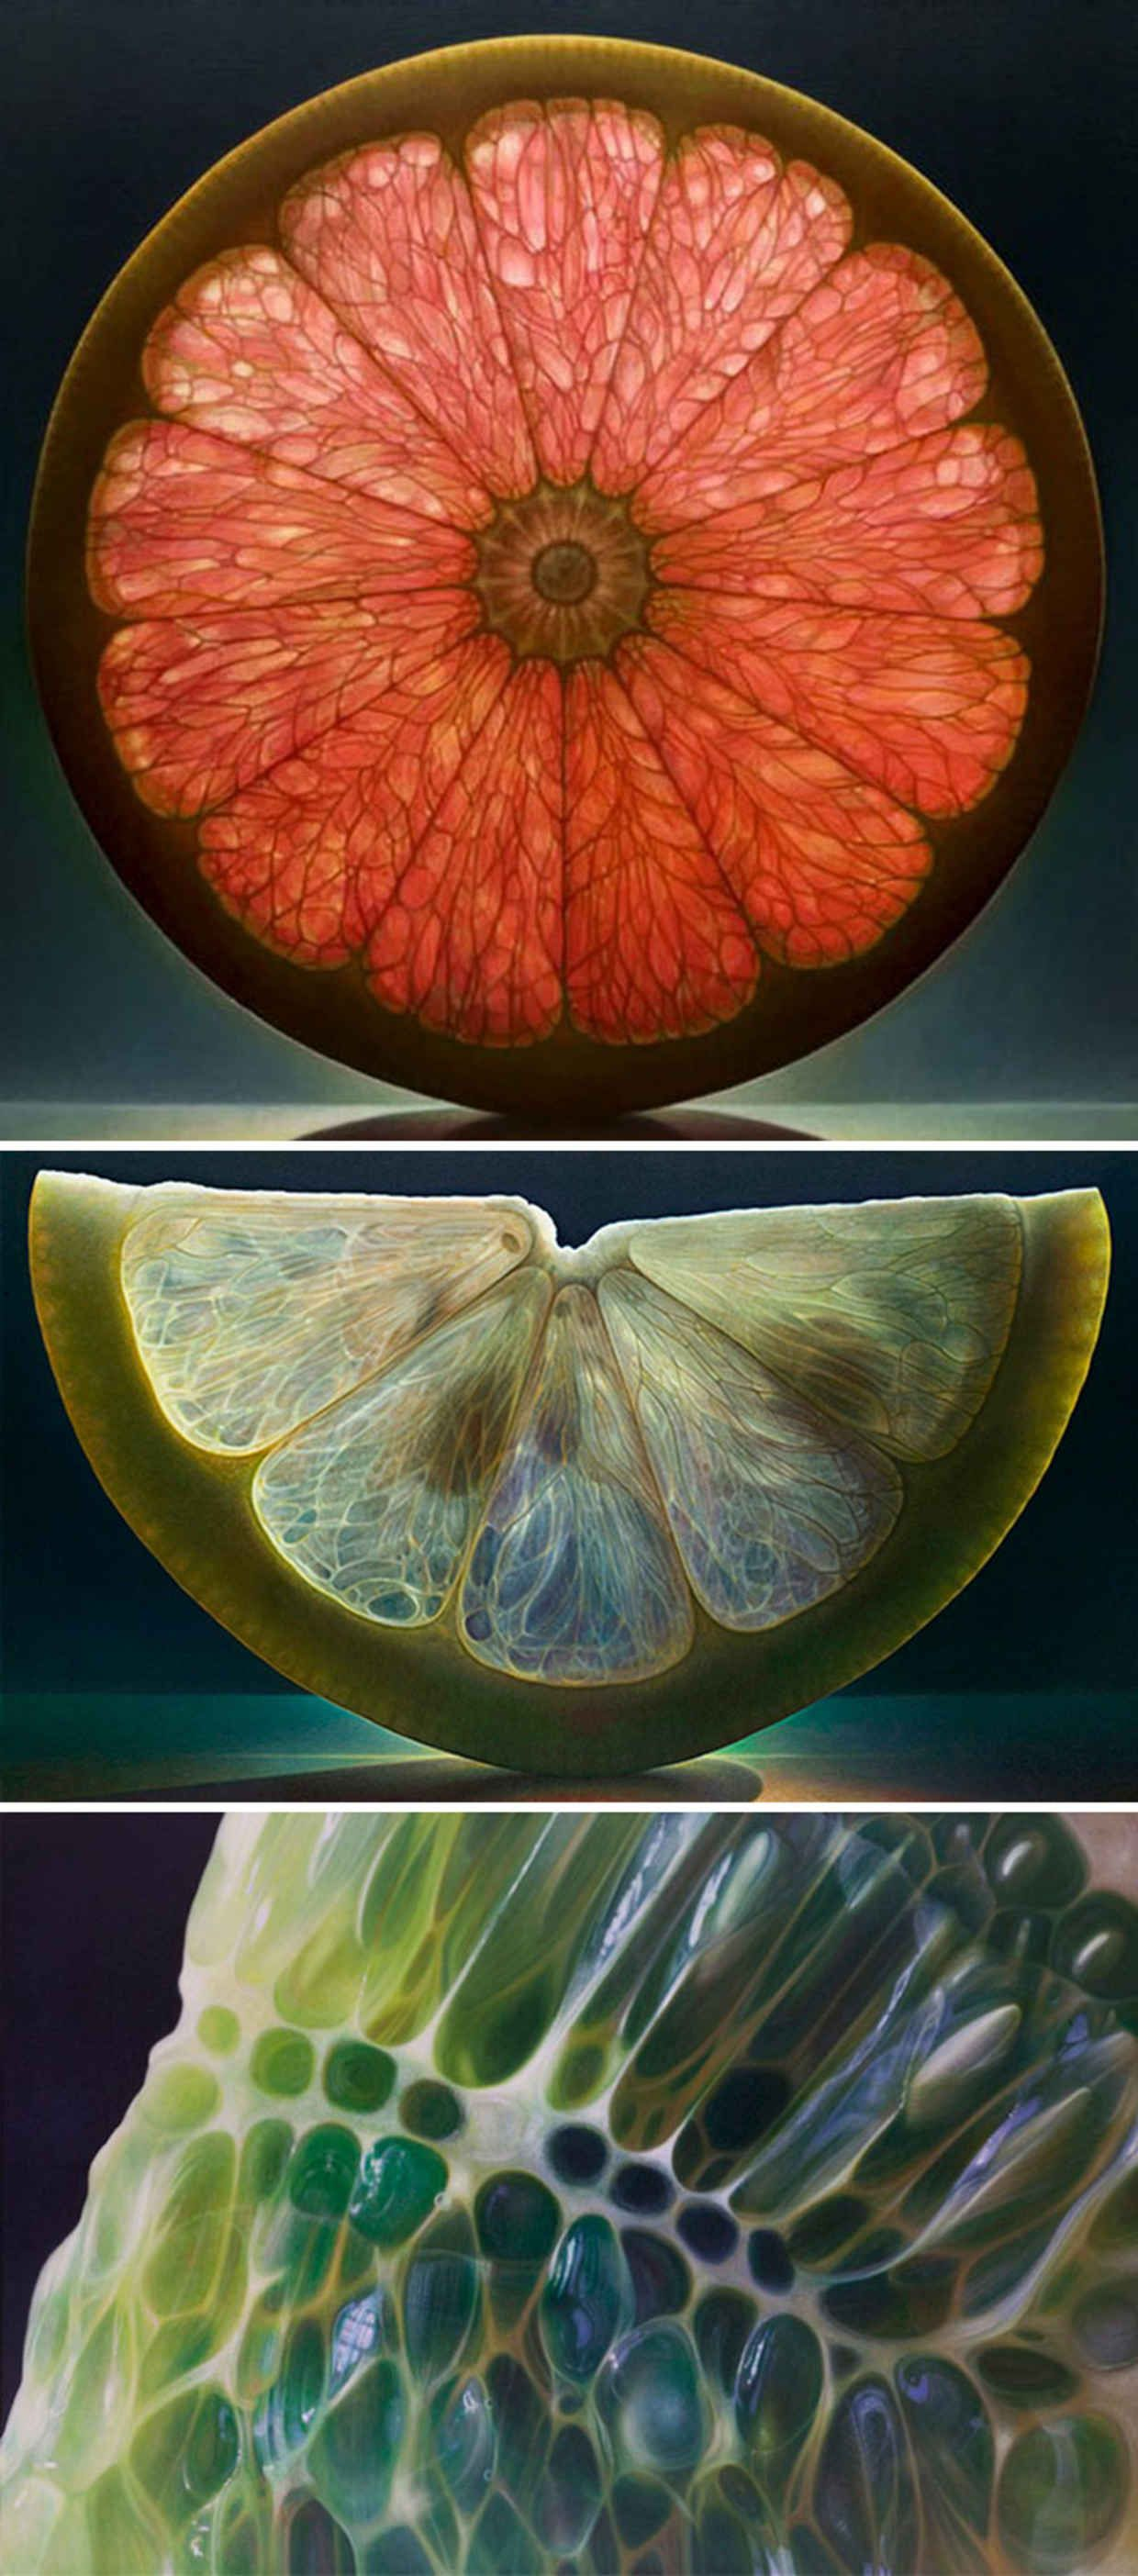 23 Examples Of Hyper Realistic Art So Good Youll Swear Theyre